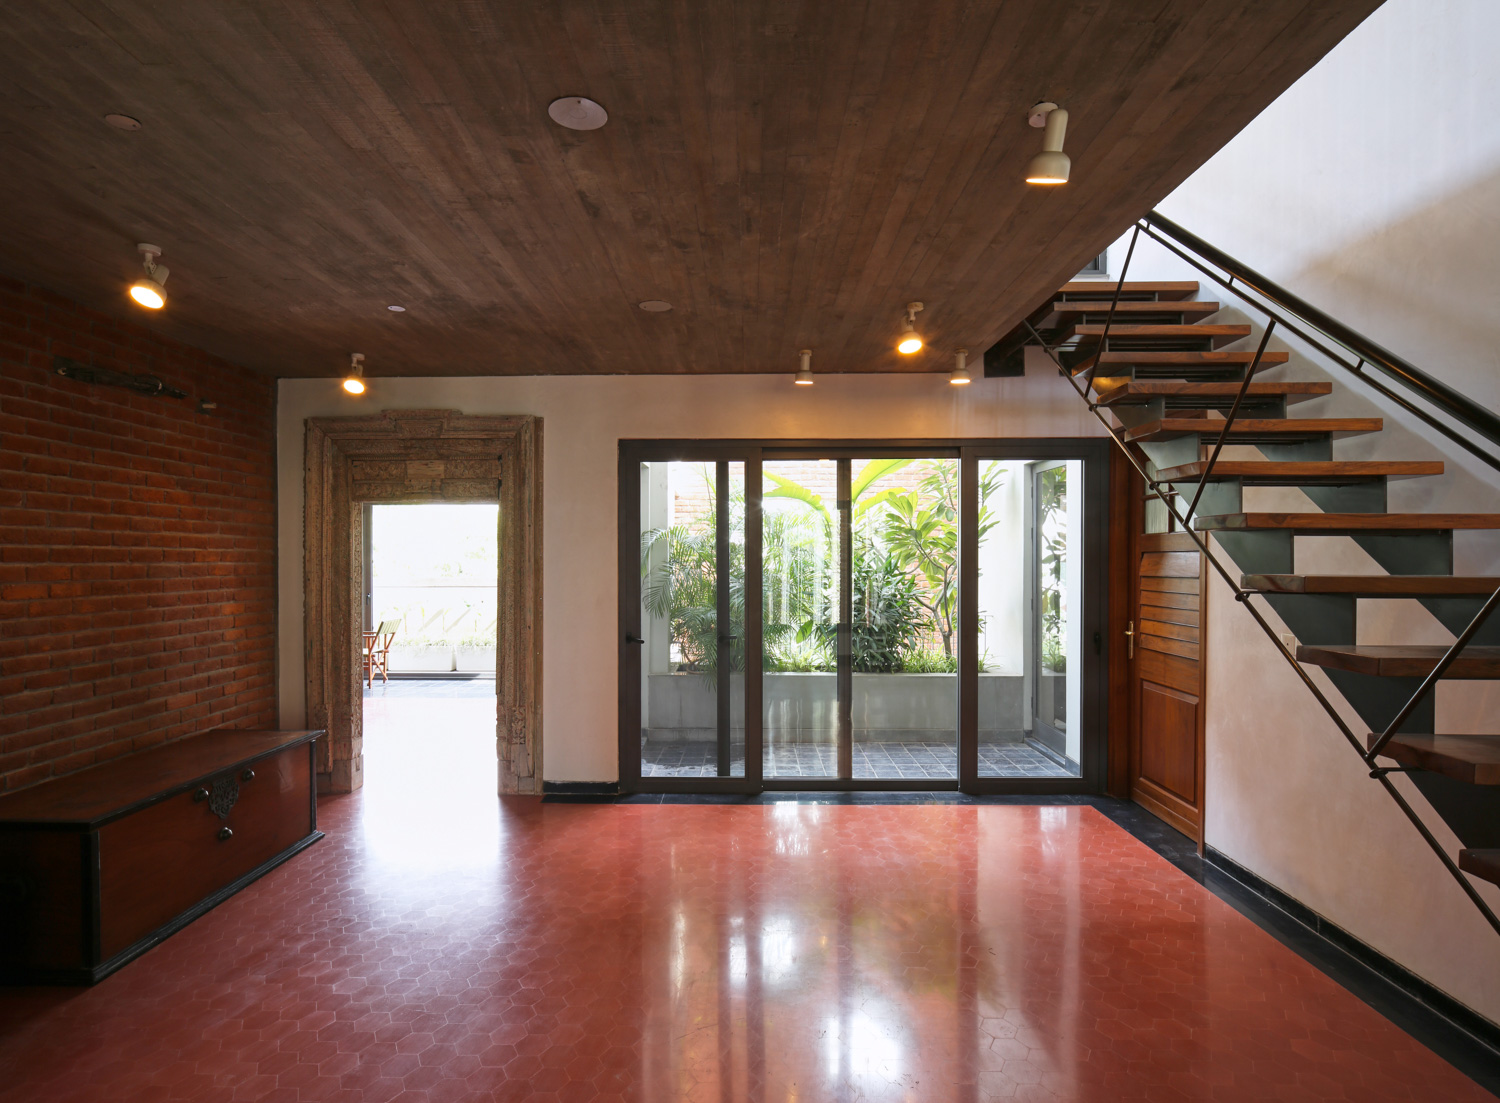 Seamless flow of spaces expands the compact house Edmund Sumner}